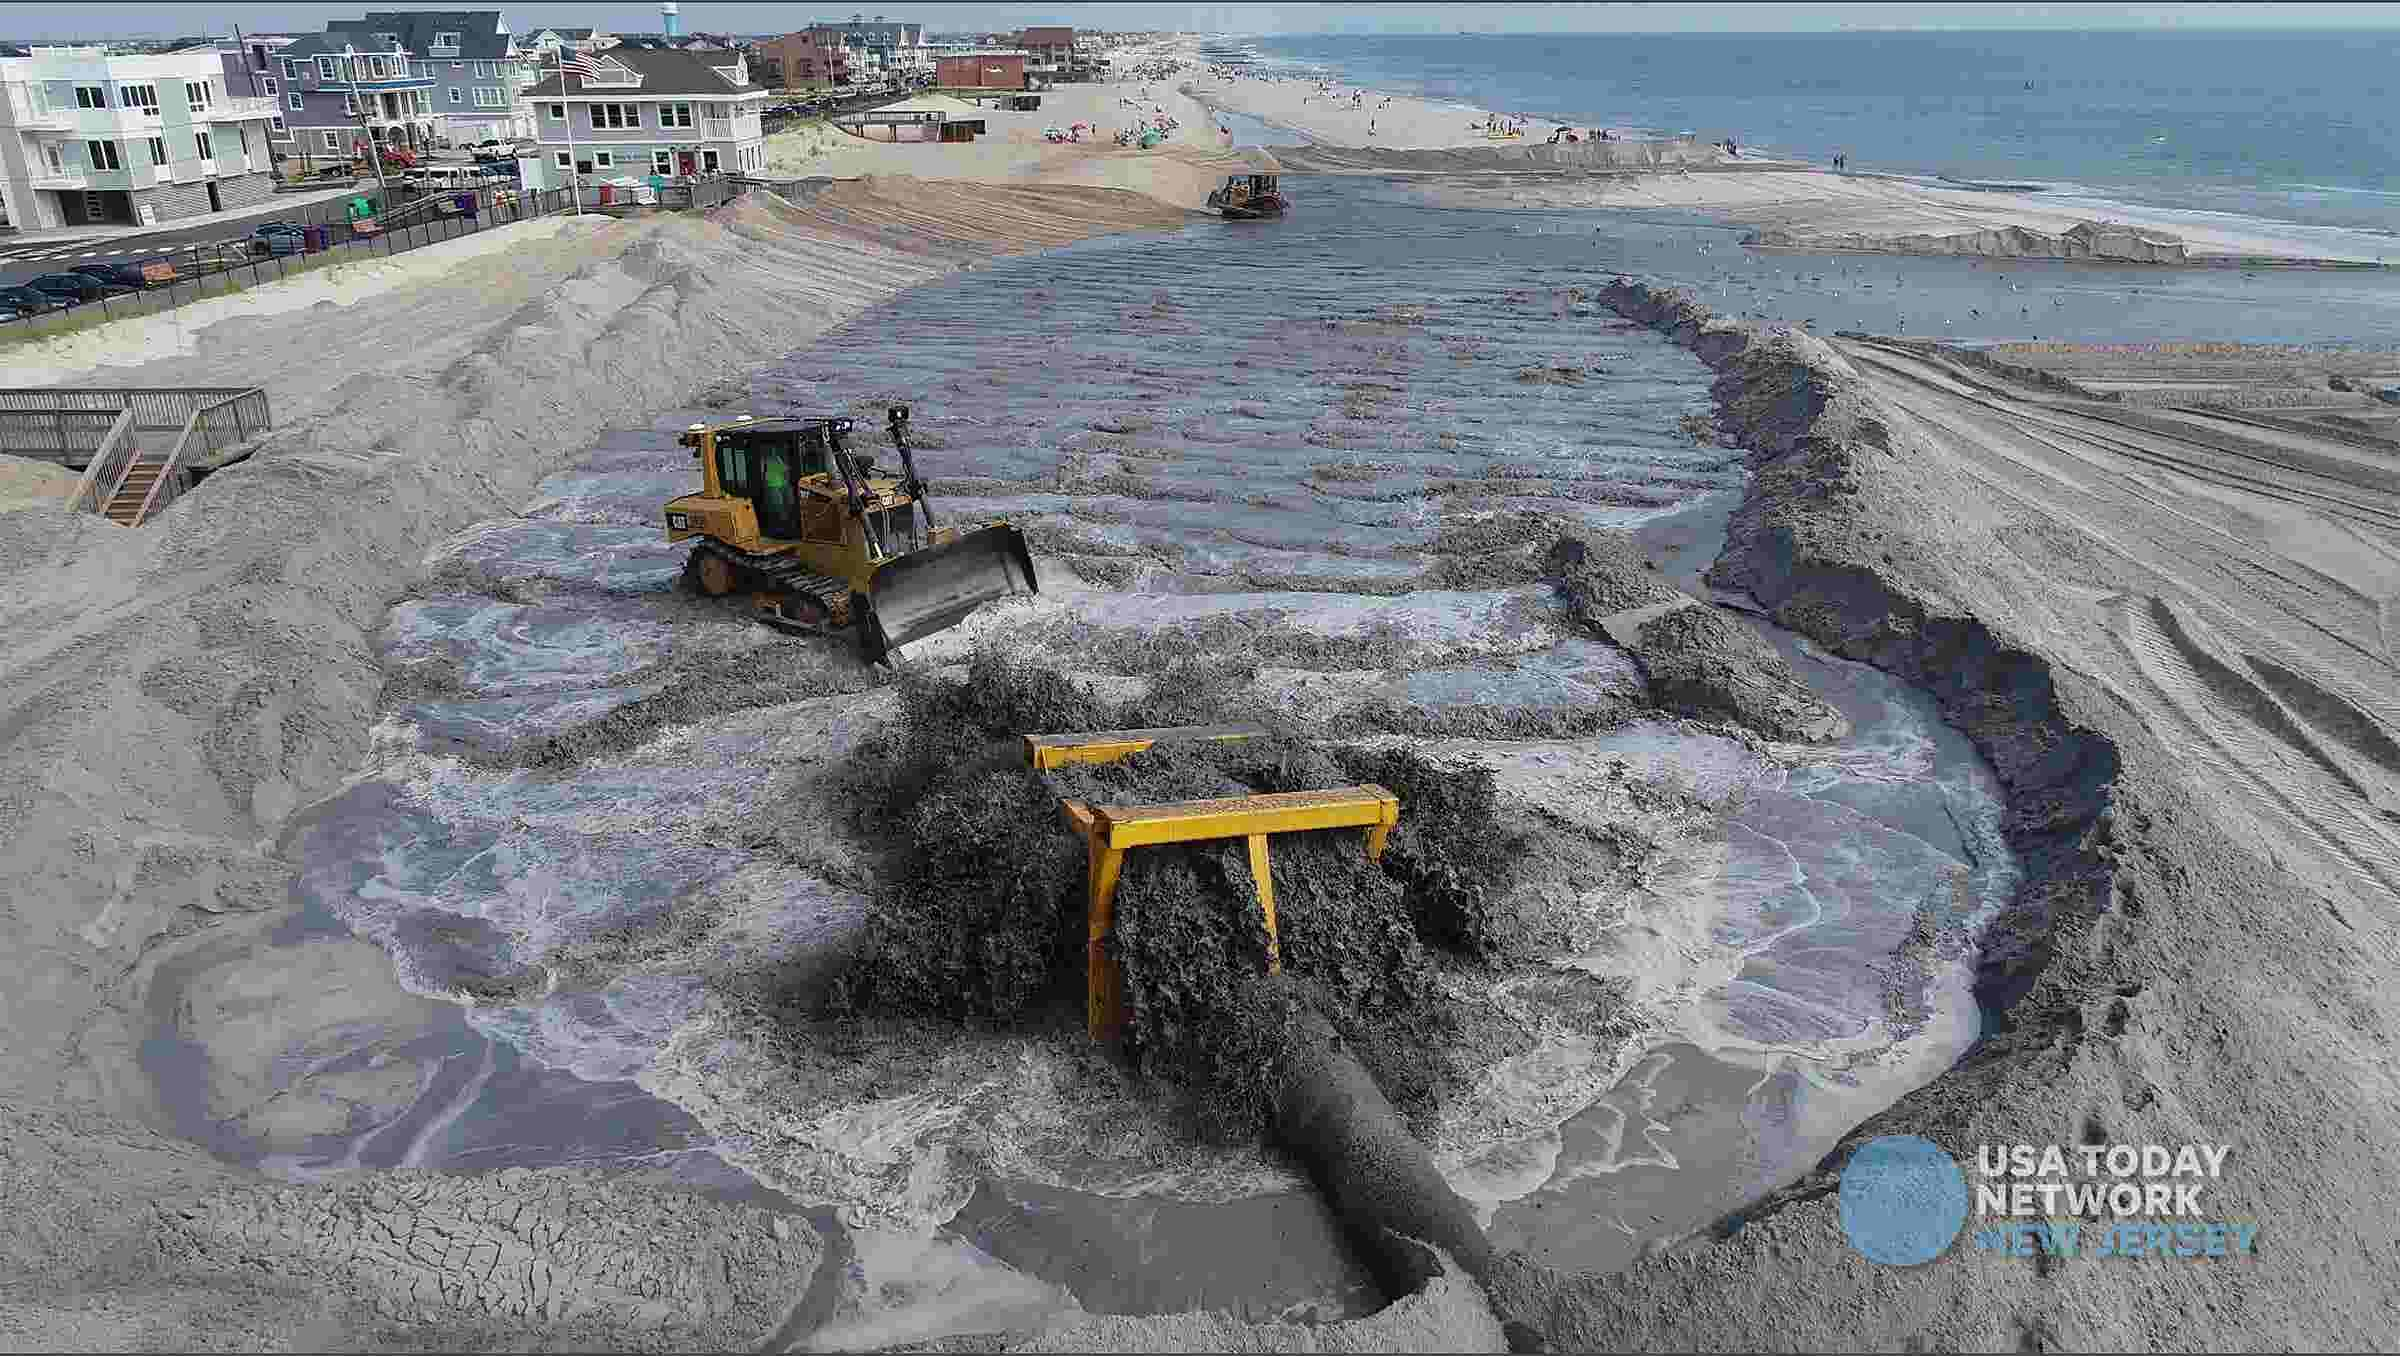 Nj Wanted Bay Head Land For Free Beach Replenishment Now It Must Pay 2 3m